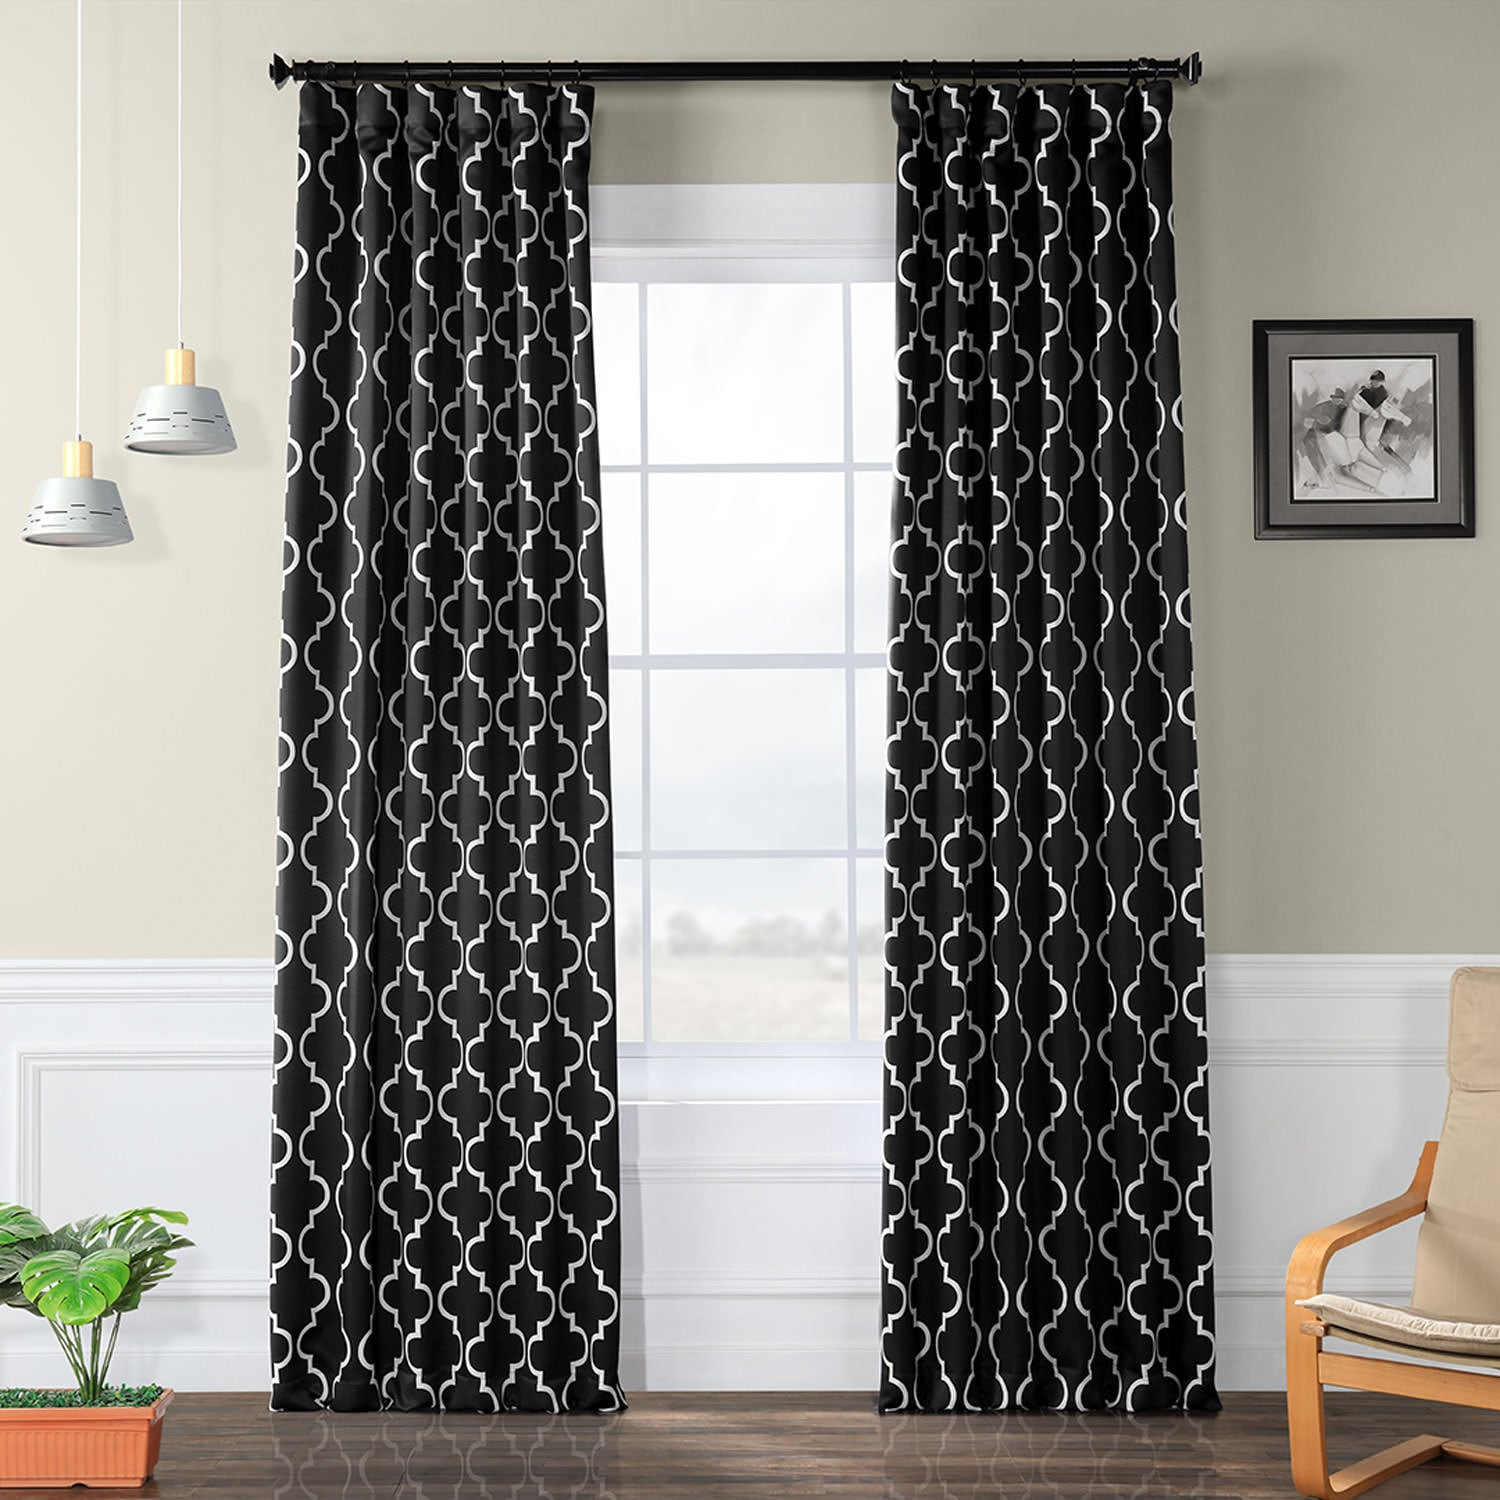 Curtain Deals Review Online Seville Black Blackout Curtain Deals Learn